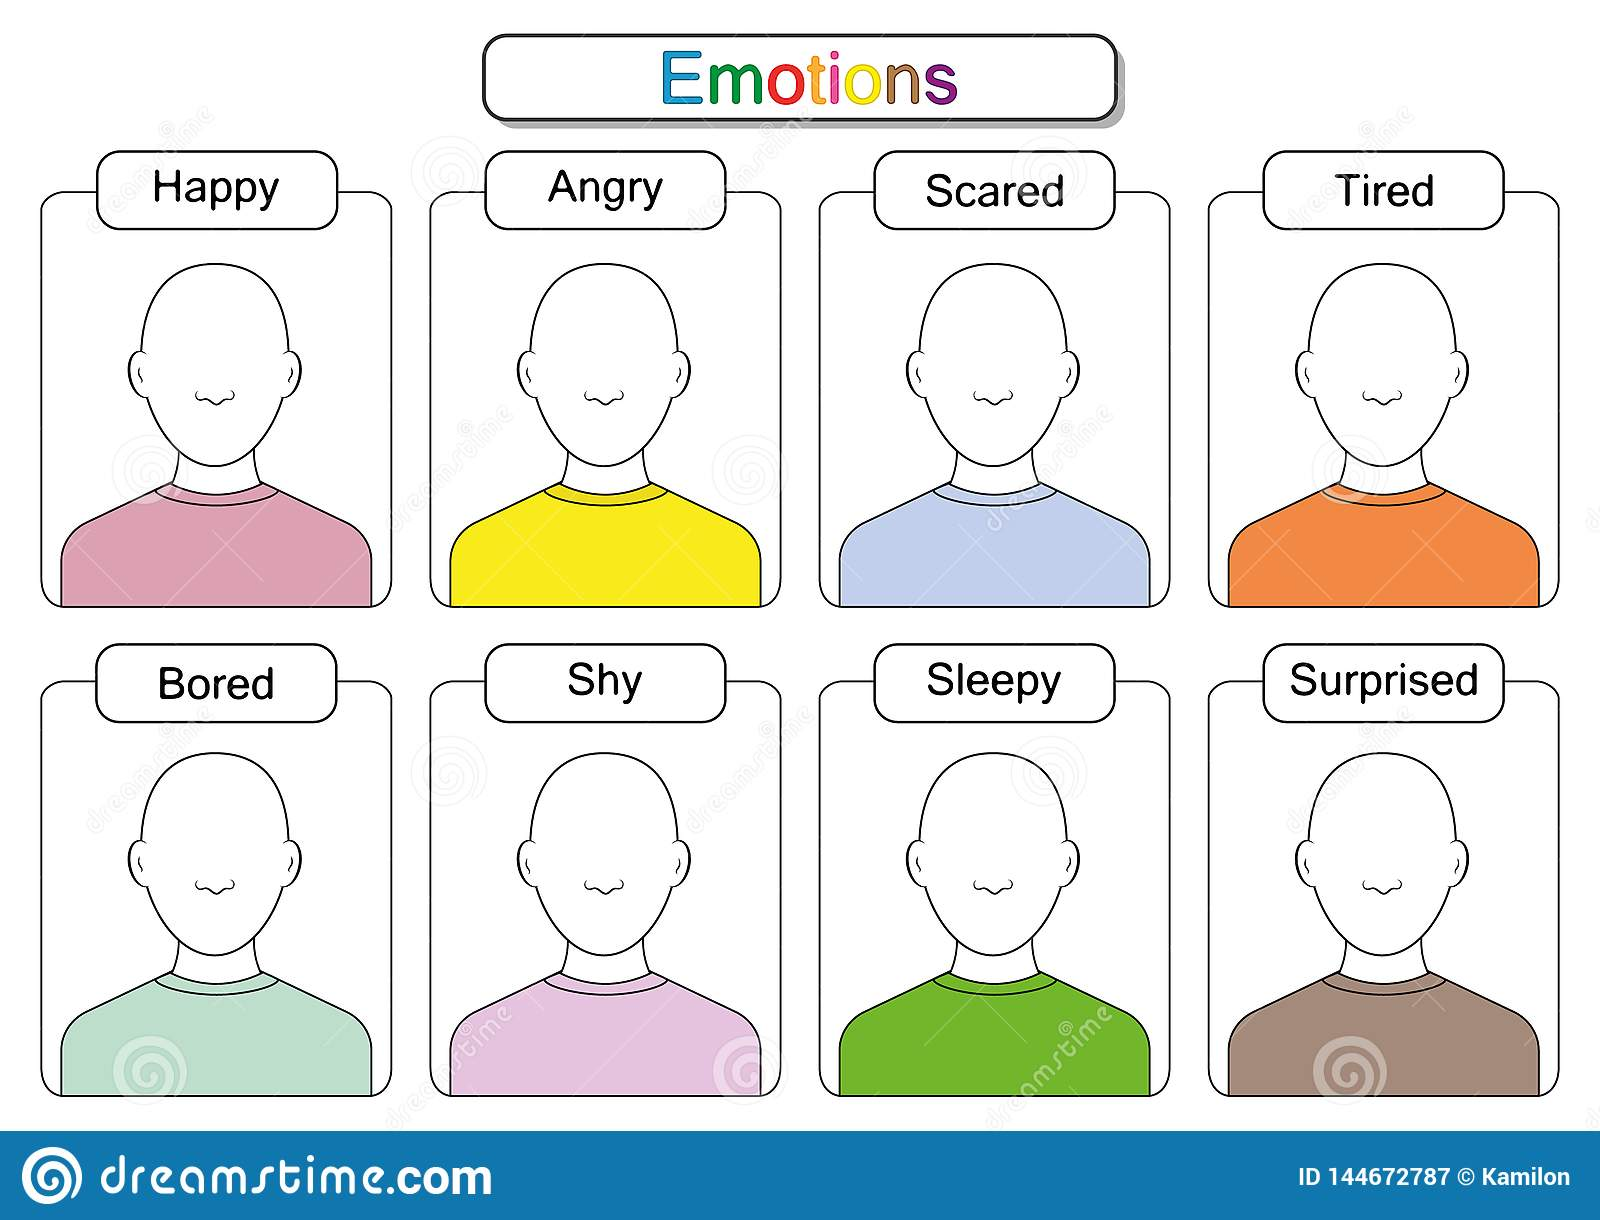 Children Are Learning Emotions Draw The Faces Draw The Emotions Educaitonal Worksheets For